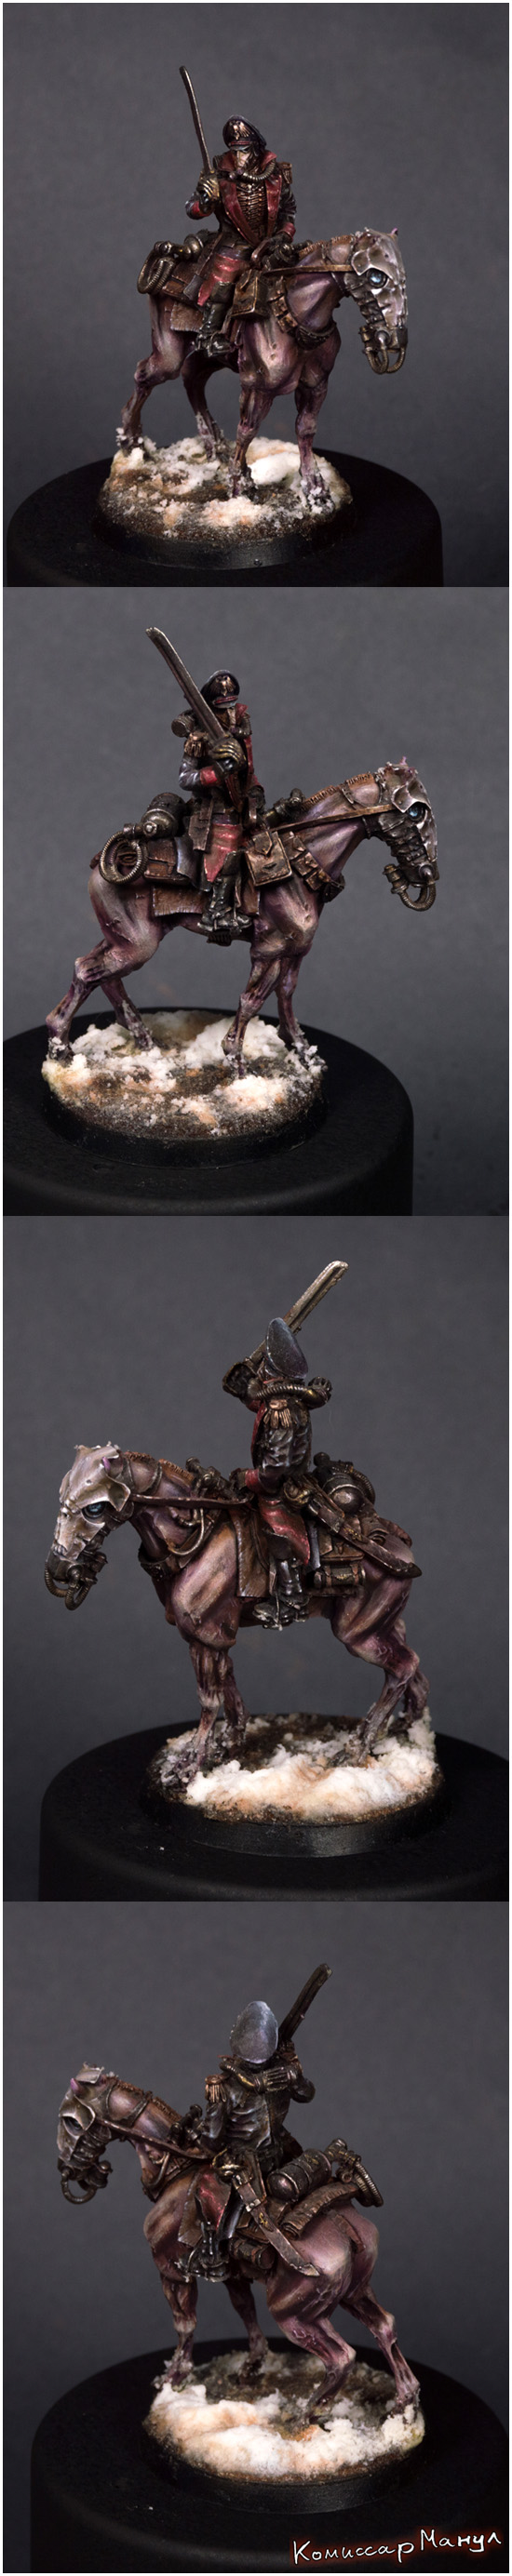 Death Korps of Krieg mounted Kommissar